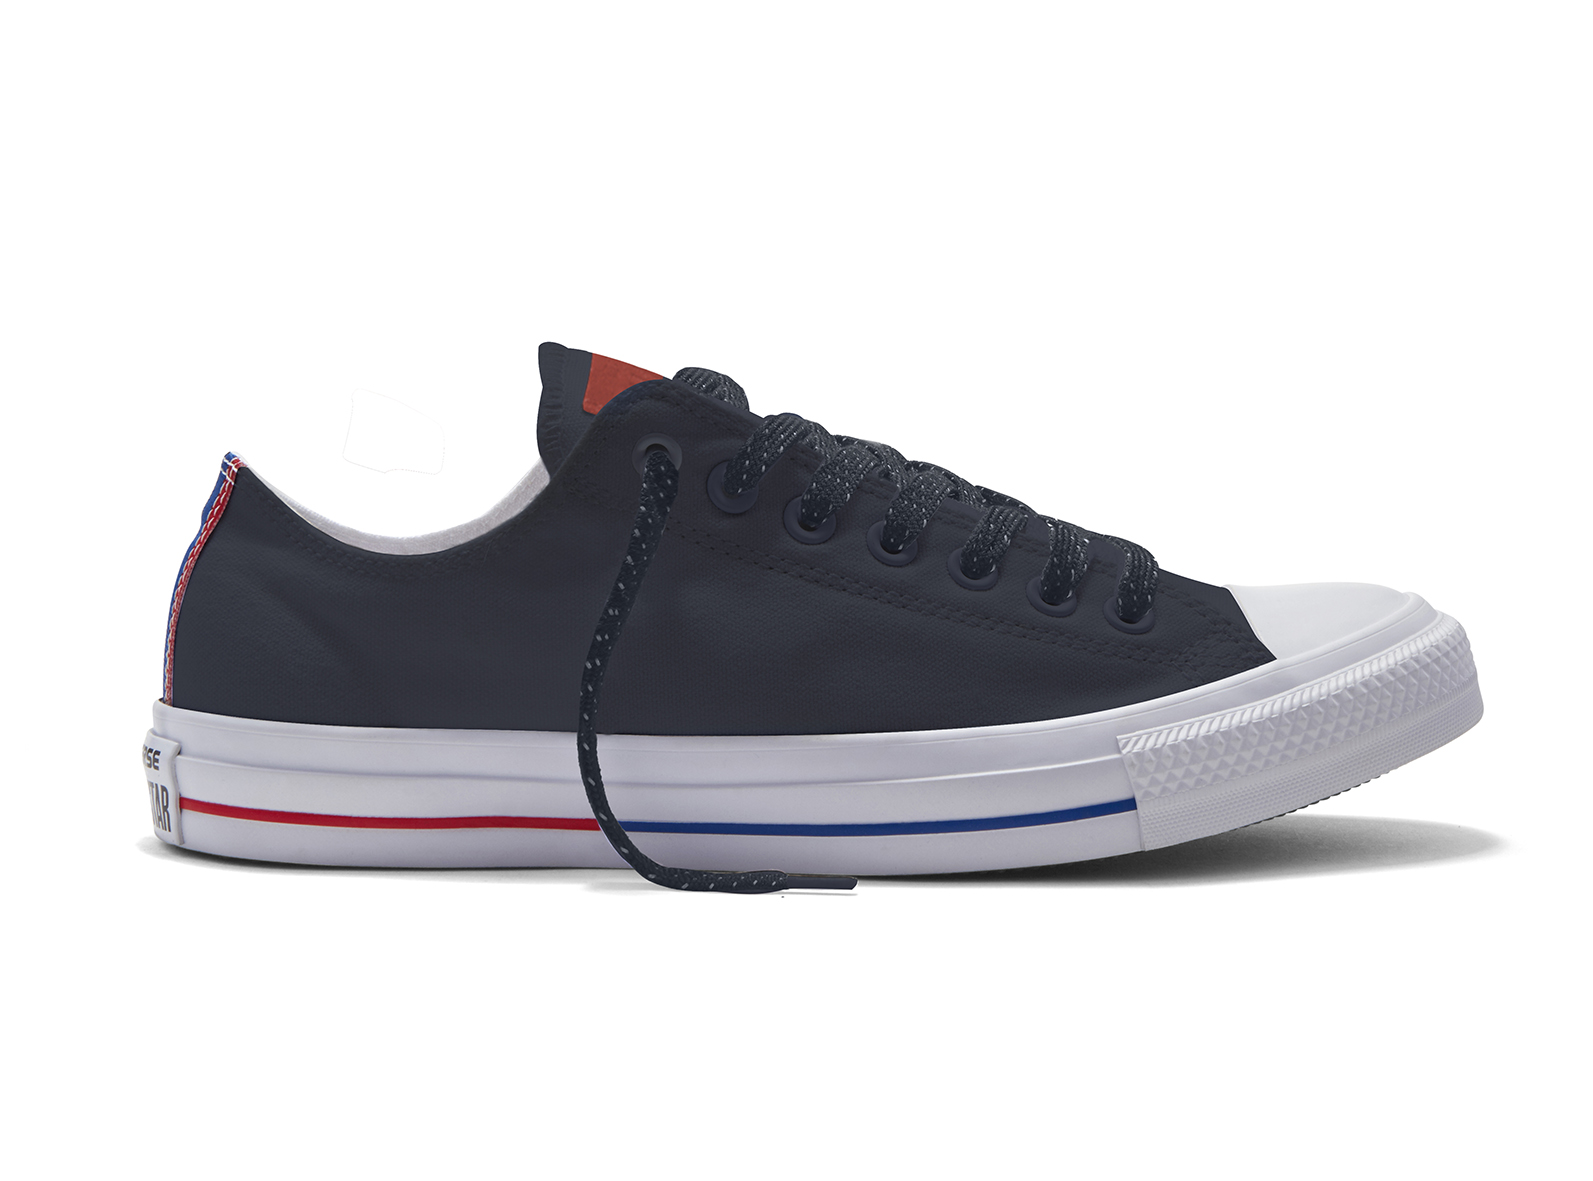 HOMBRE_CT AS SHIELD CANVAS OX Obsidian_White_259 SOLES.jpg